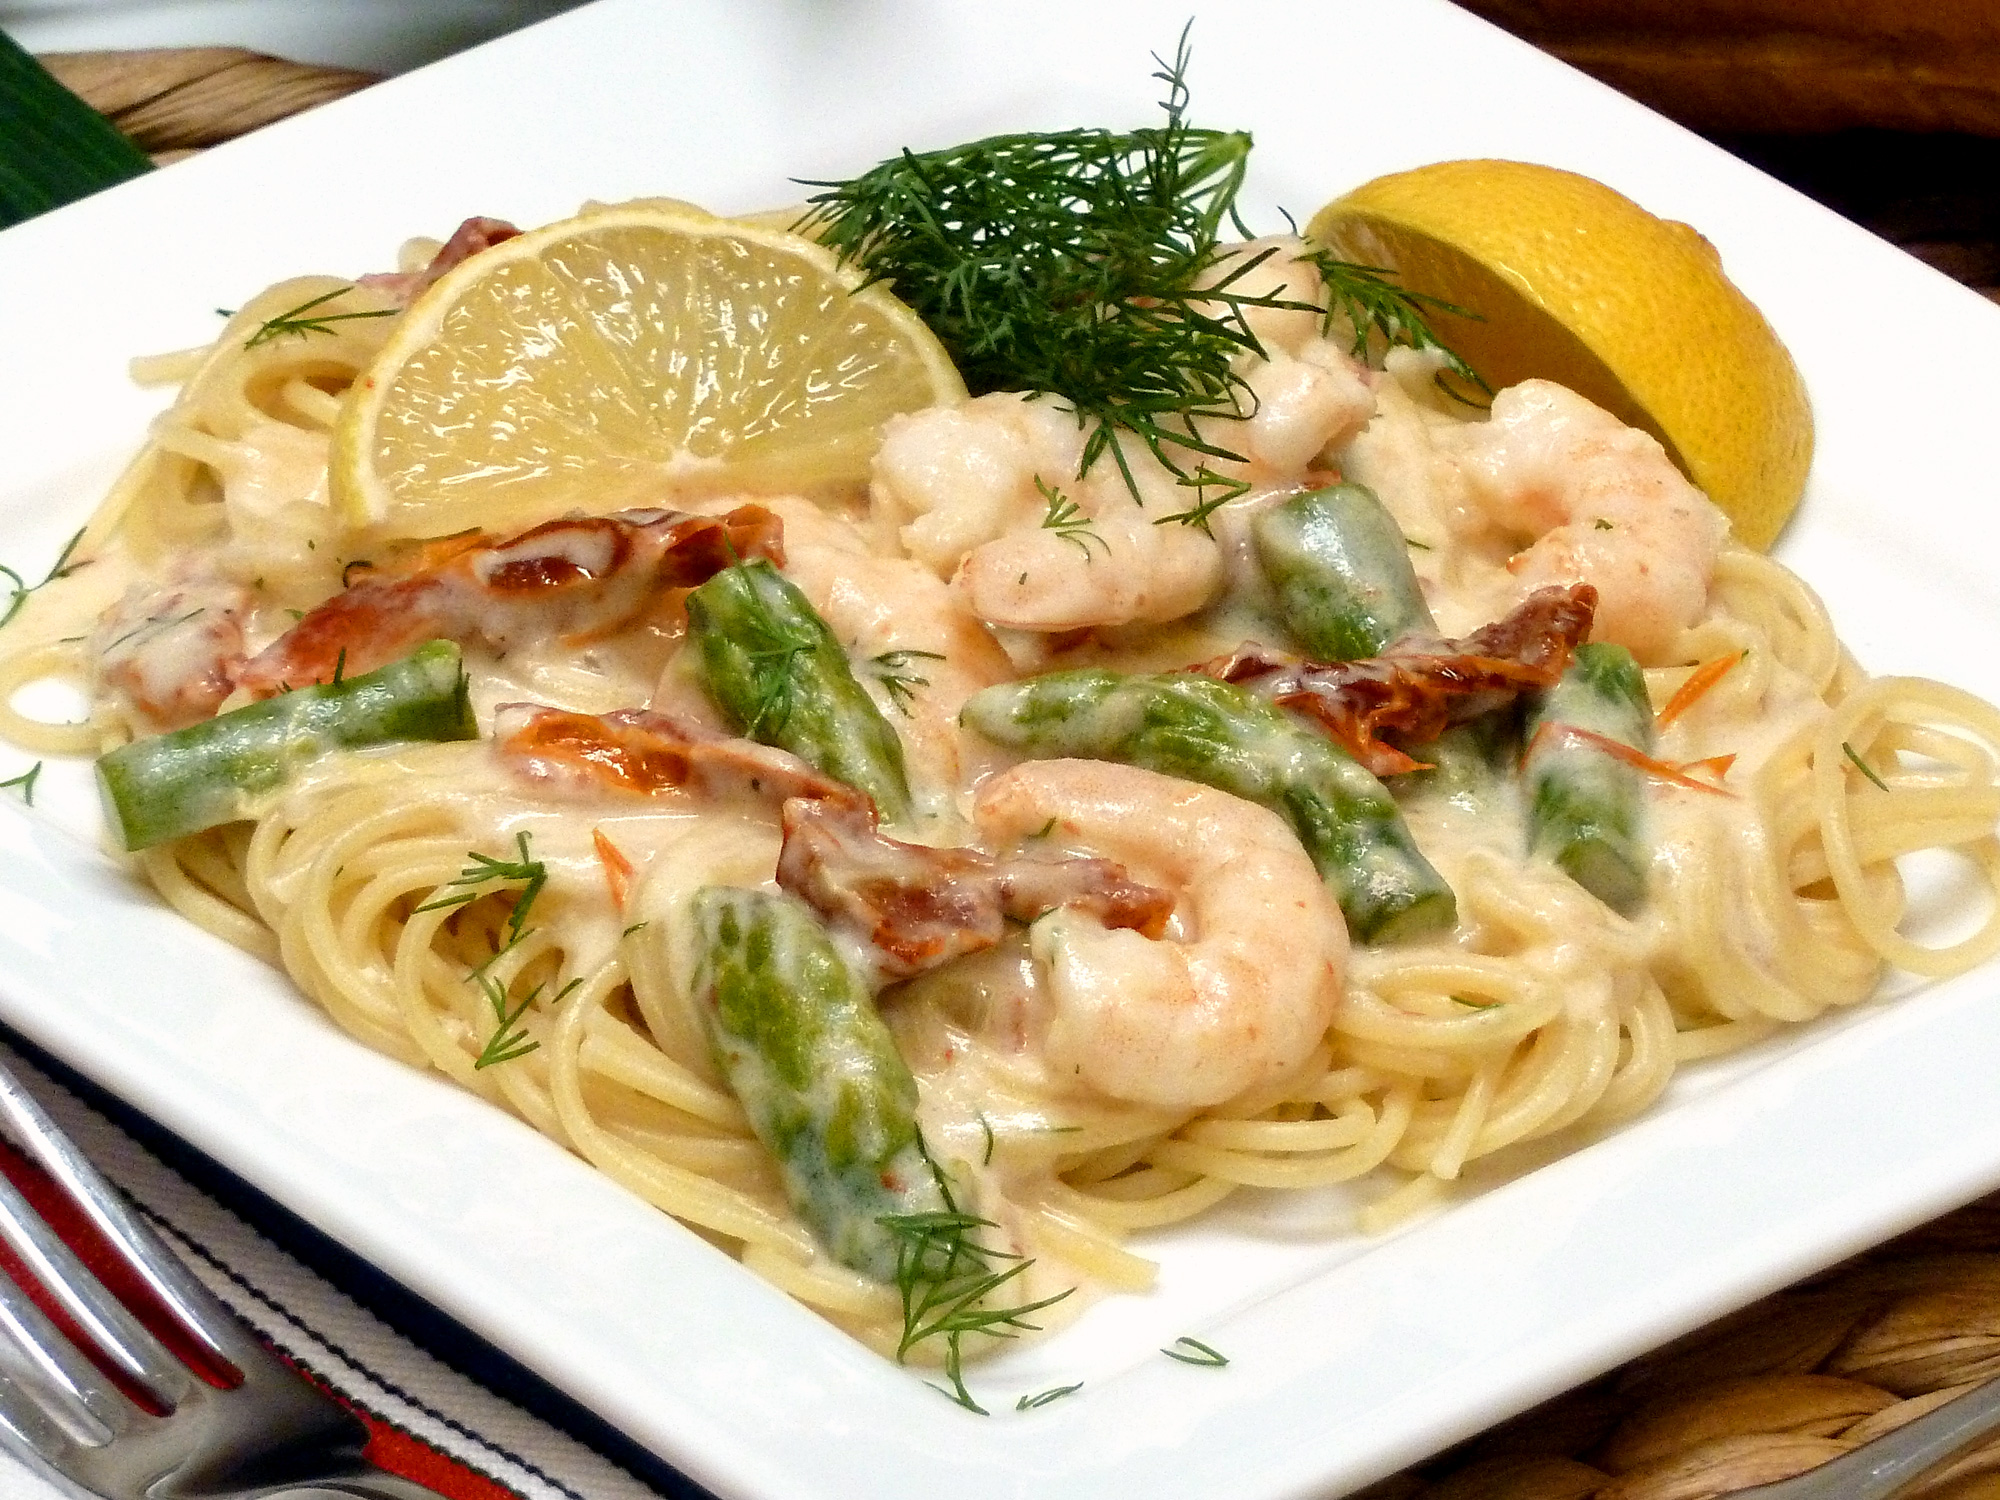 Shrimp with a rich and cheesy alfredo sauce is a snap to make in less than 30 minutes.